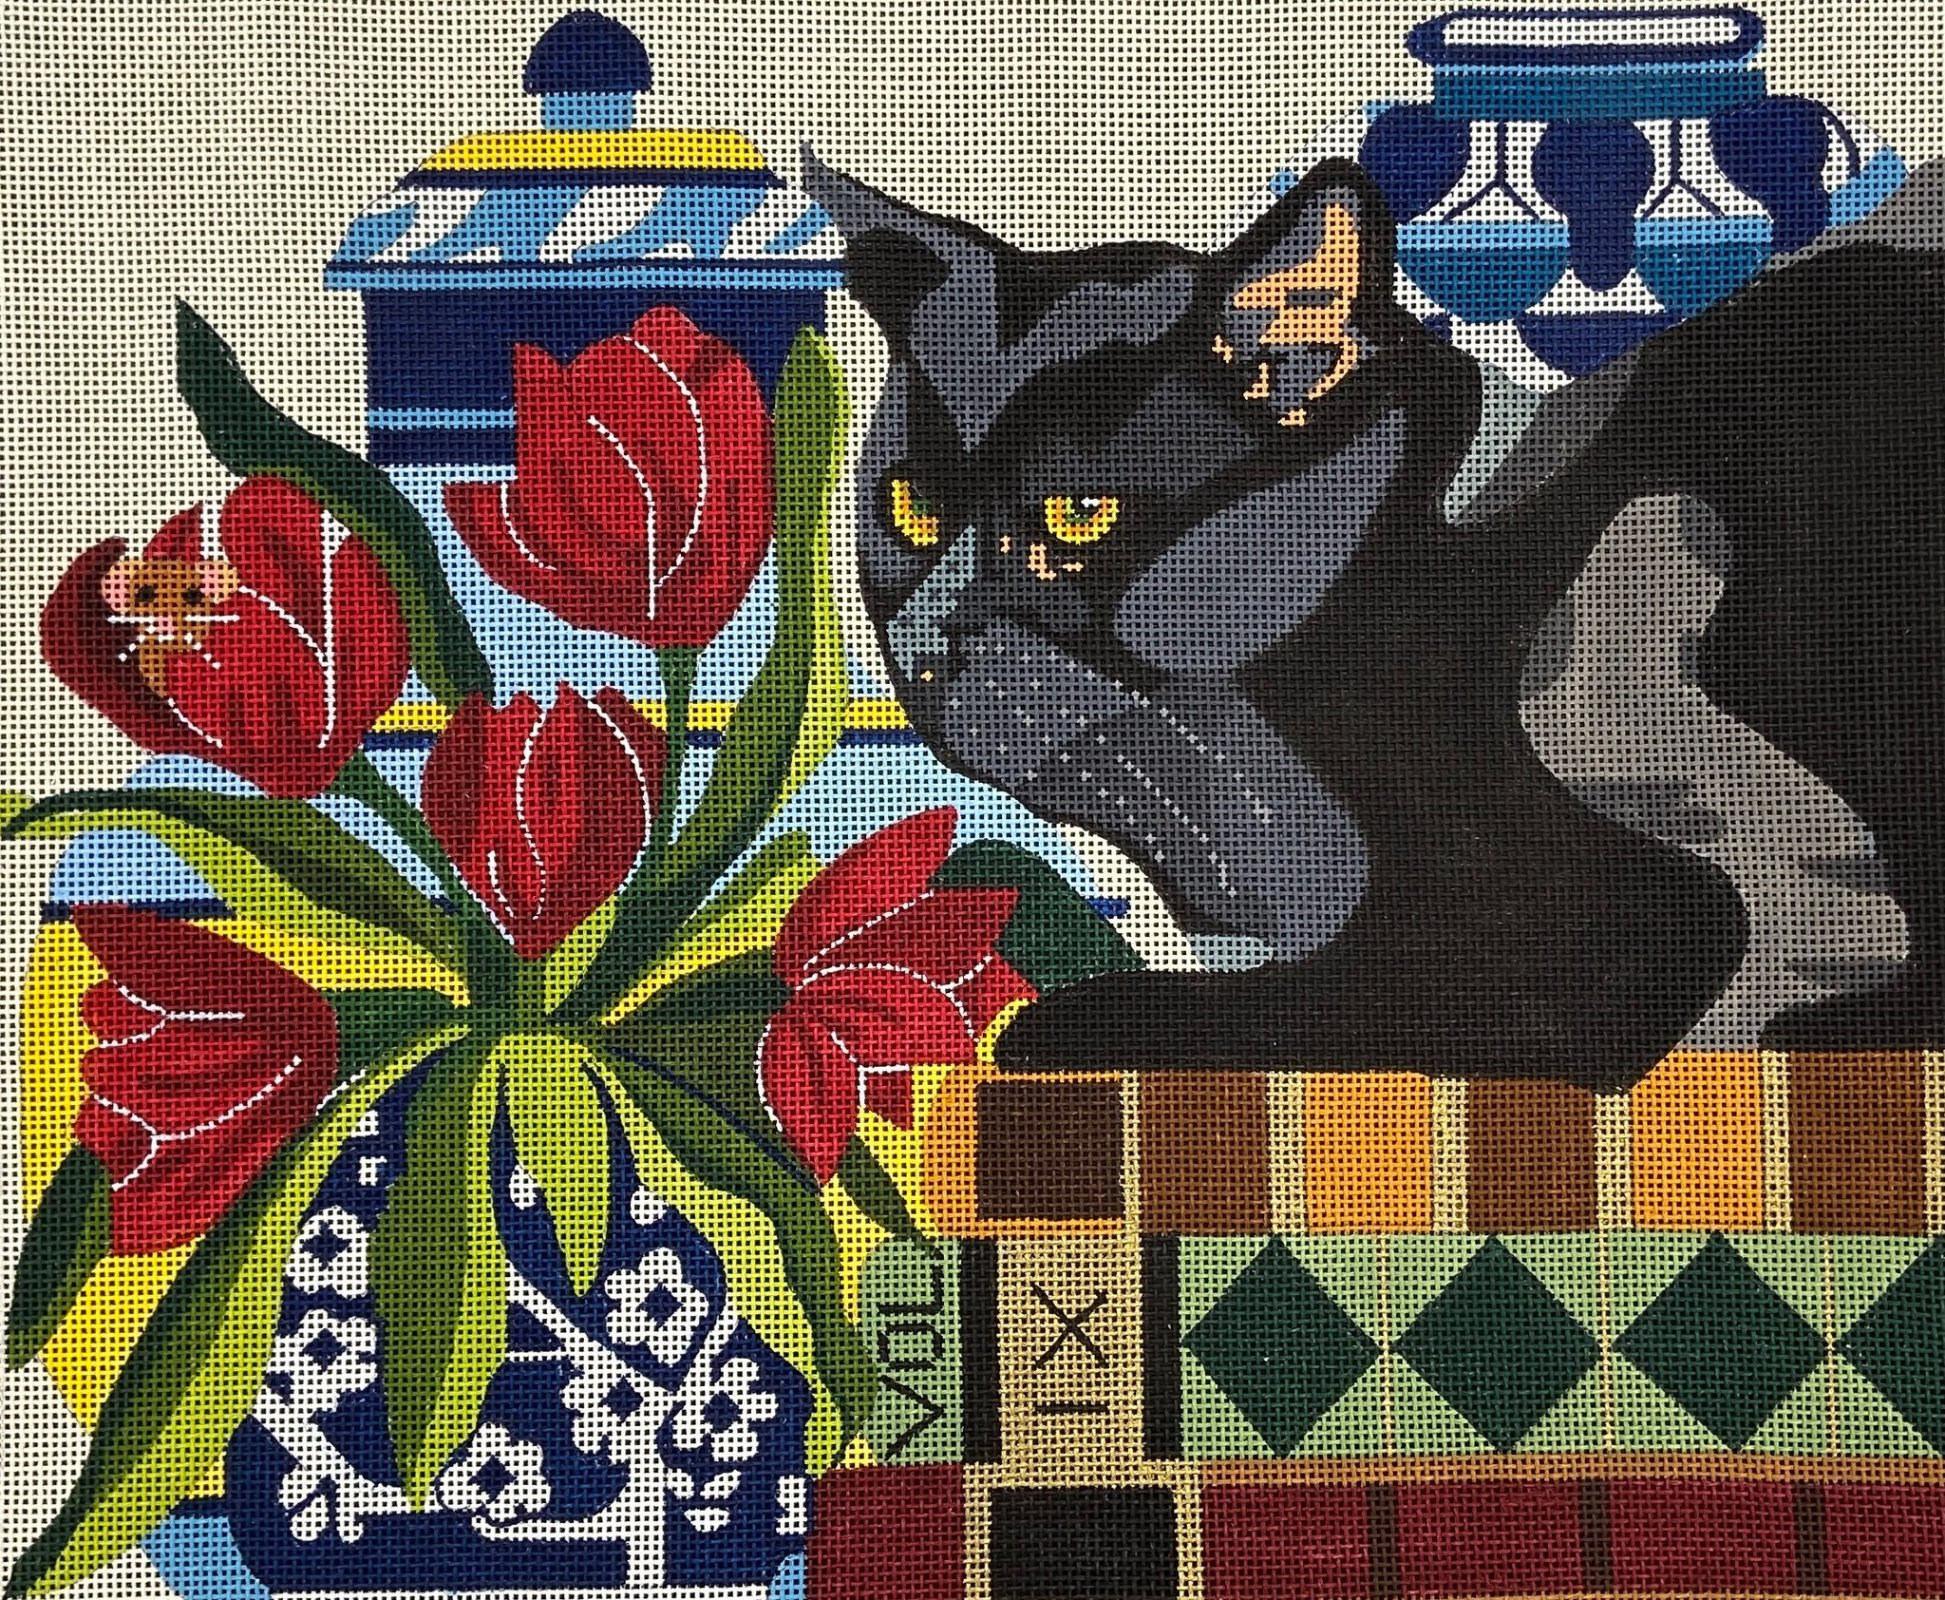 C01 Cat and Mouse Melissa Prince